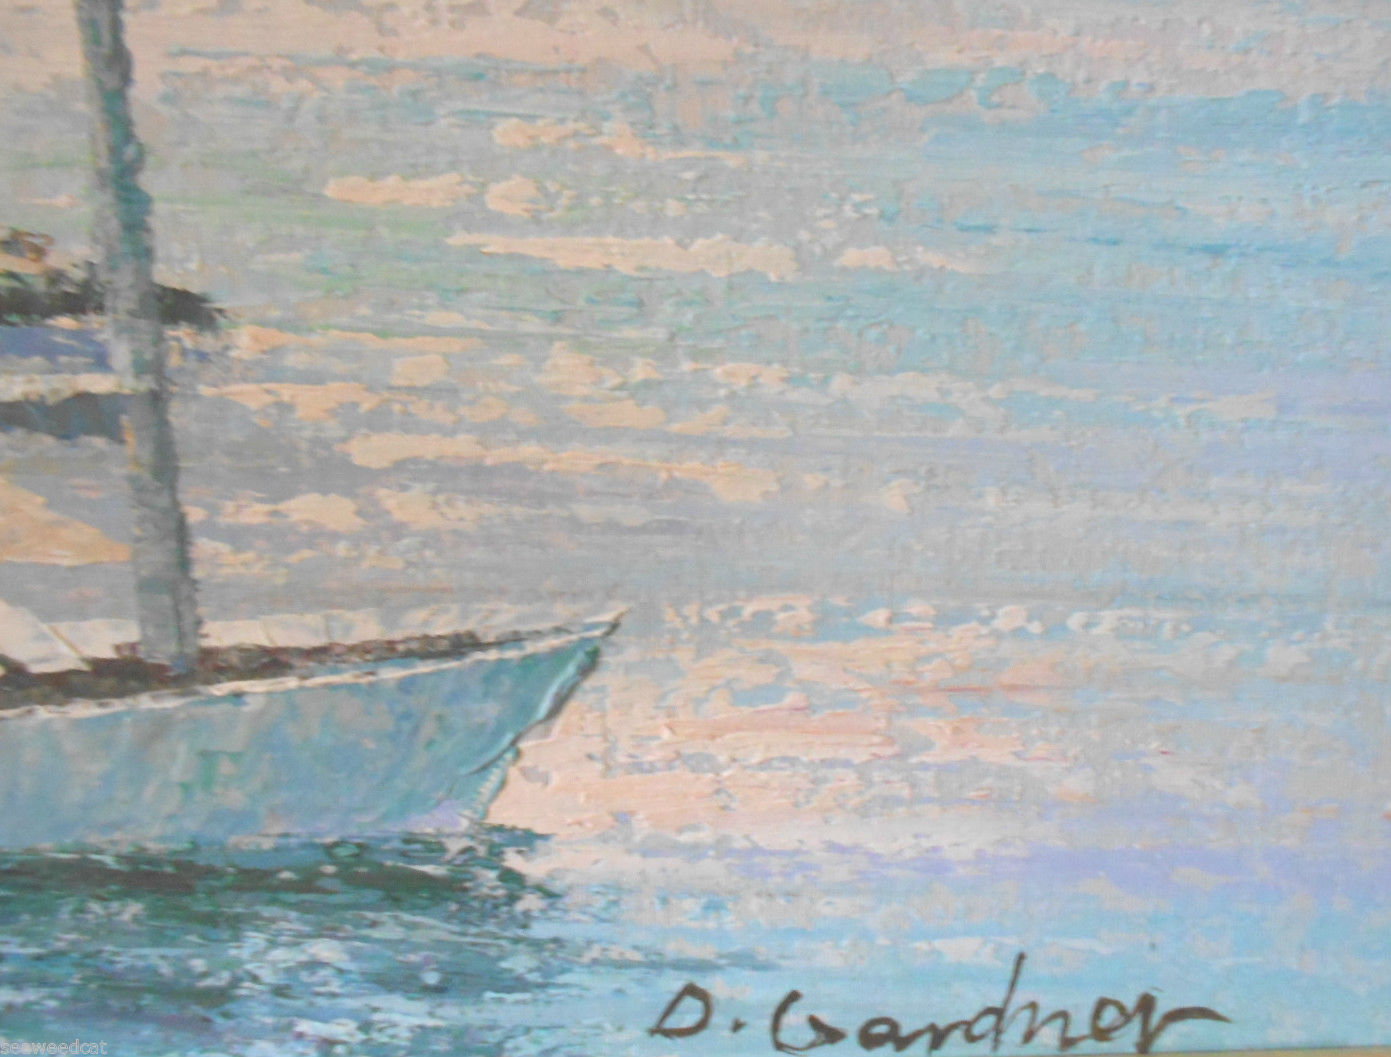 Sea Scape D. Gardner; Original Oil